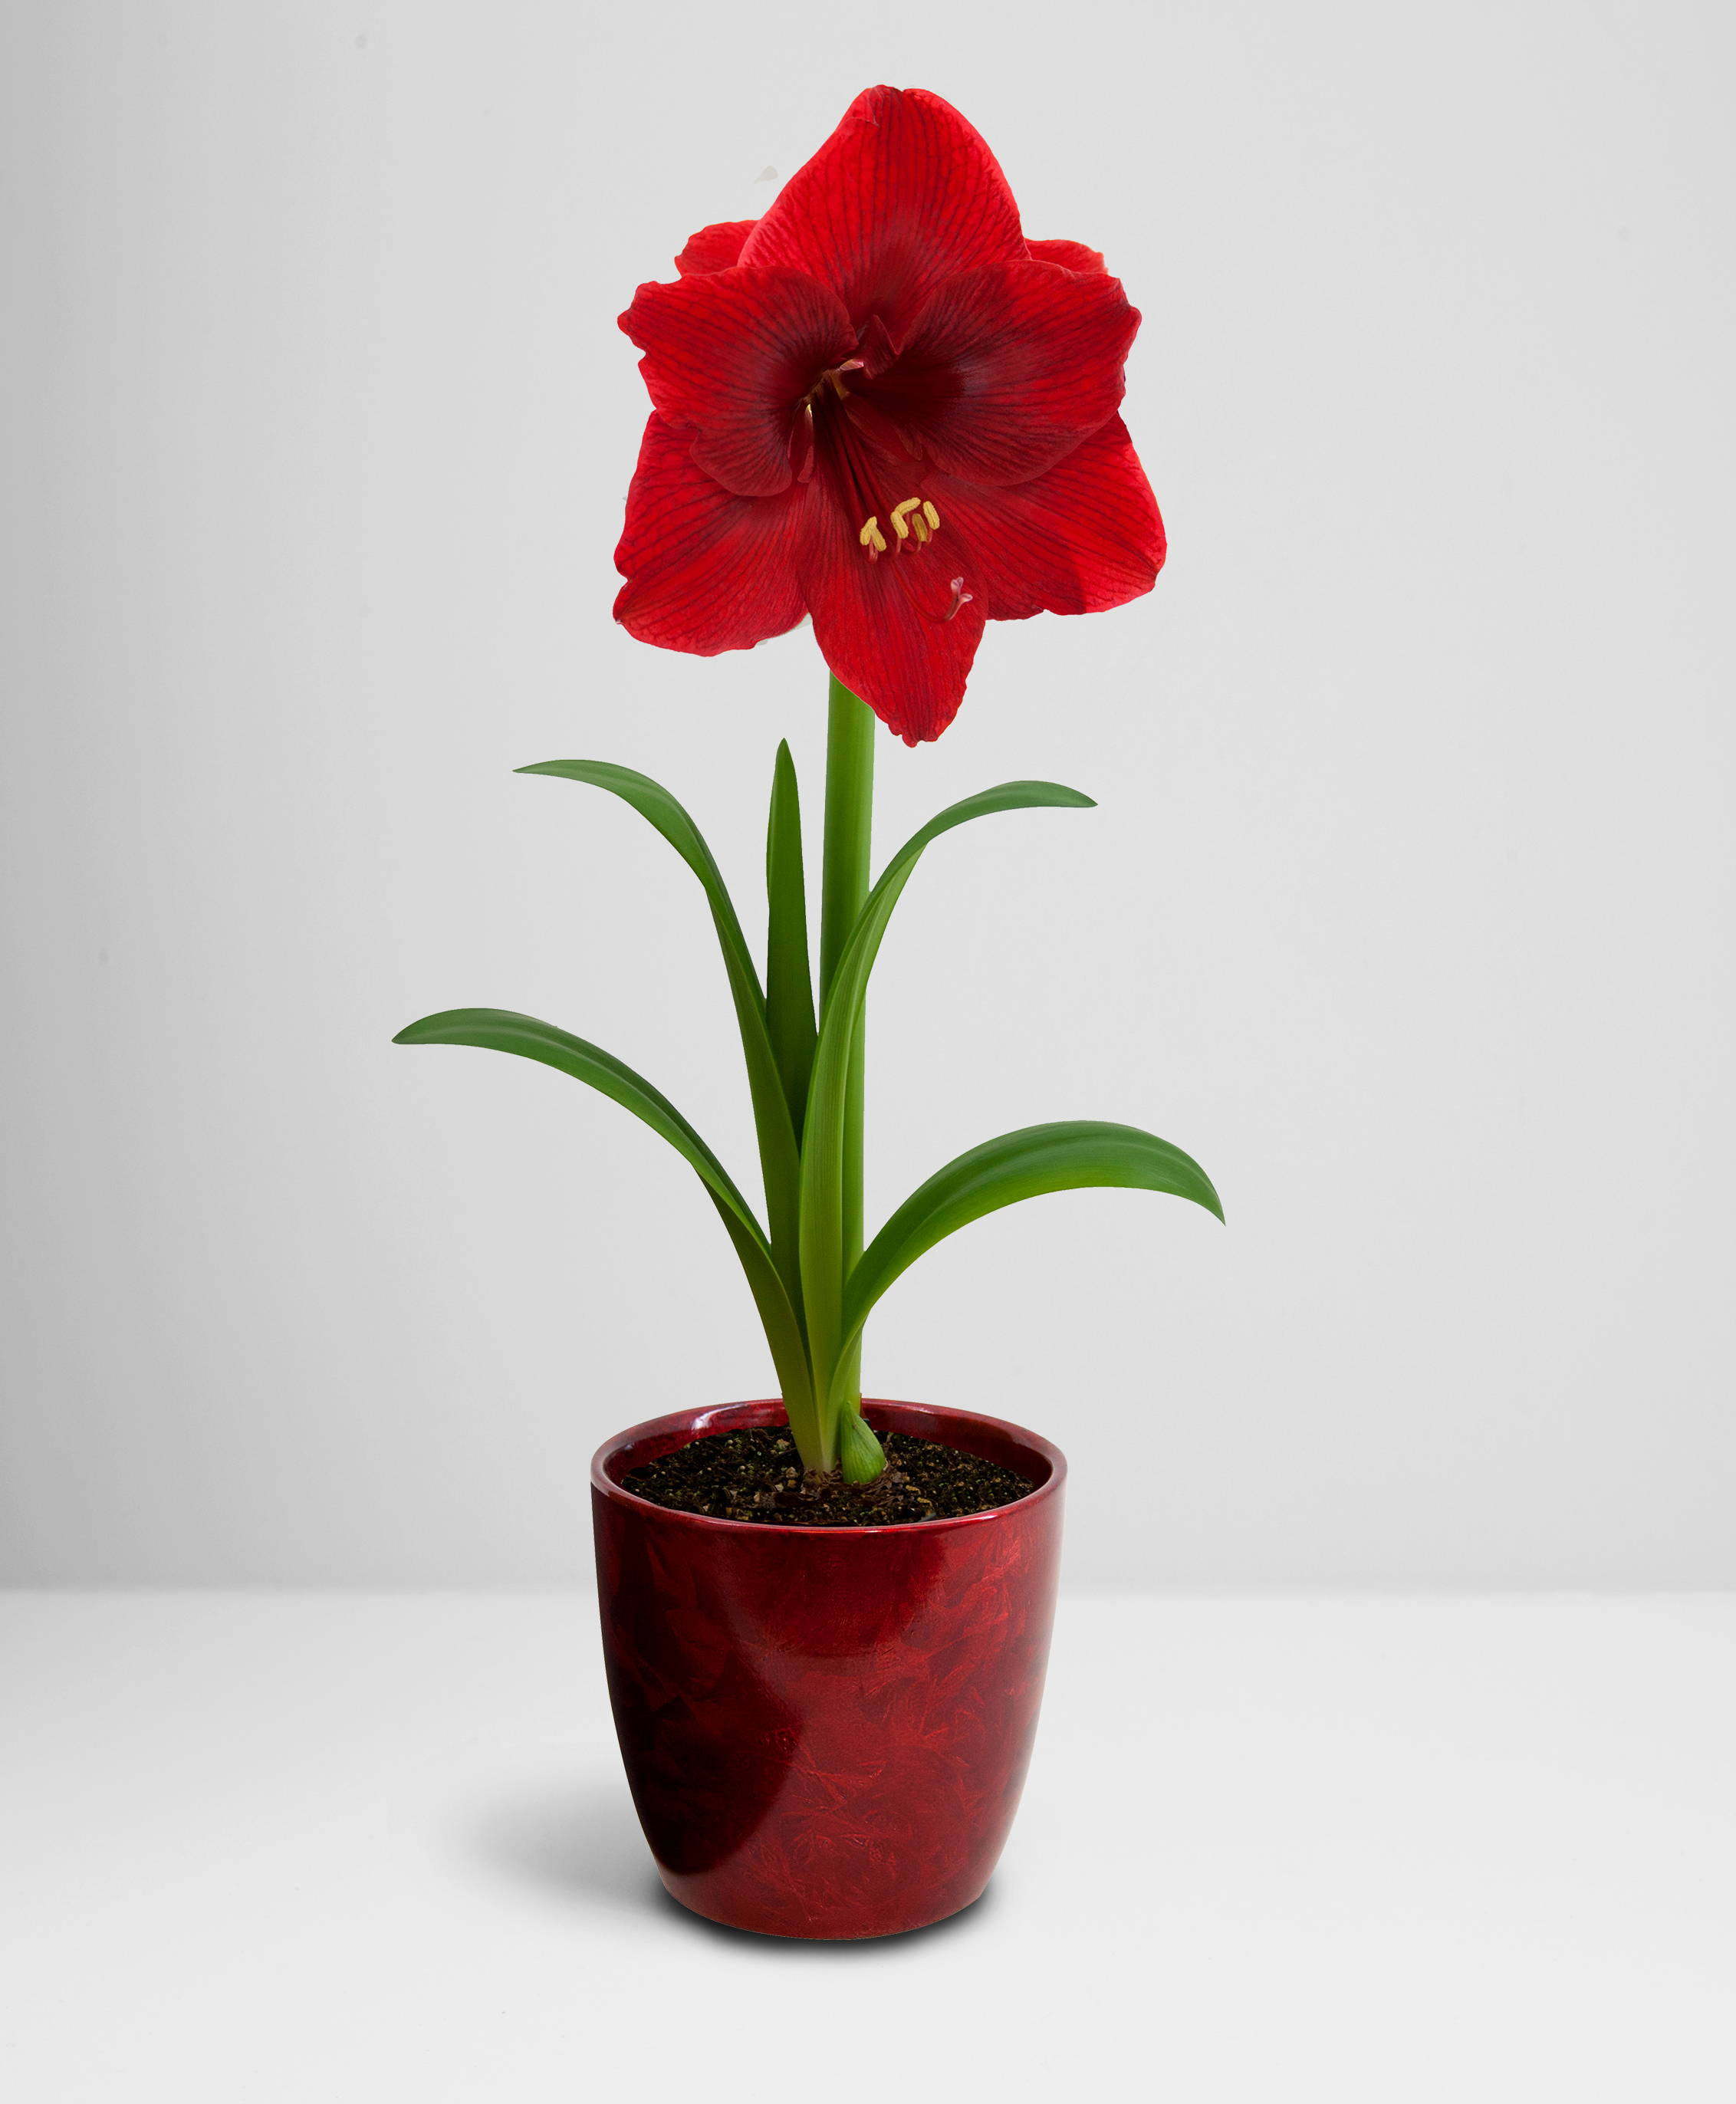 Top Choice Amaryllis in Frosted Red Ceramic